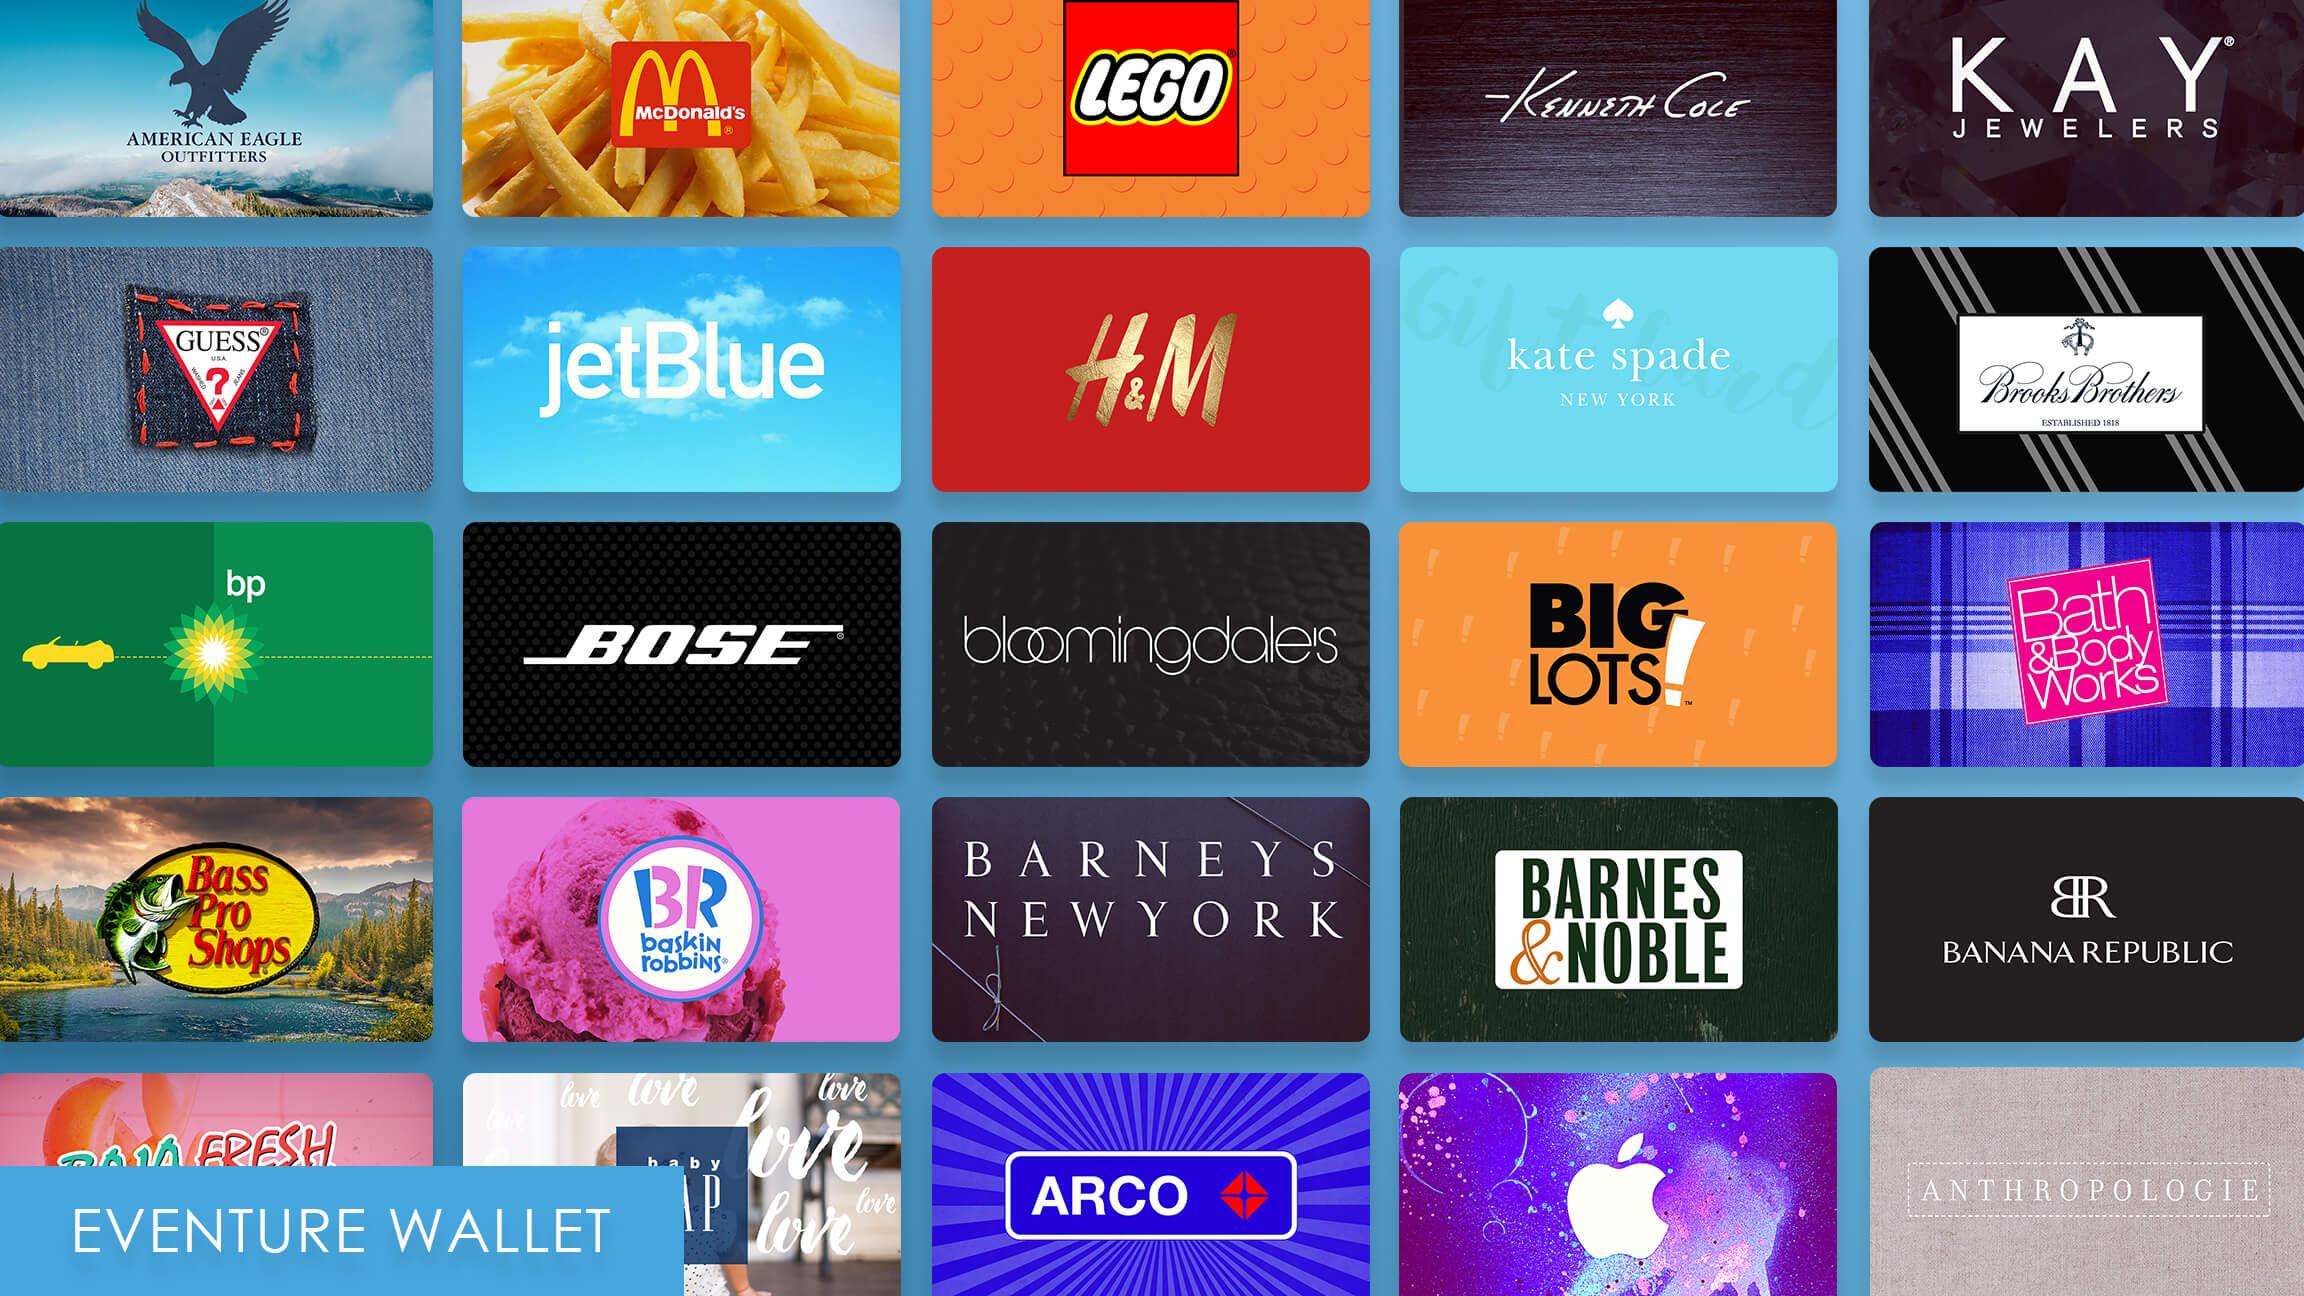 Eventure Wallet Gift Card Images